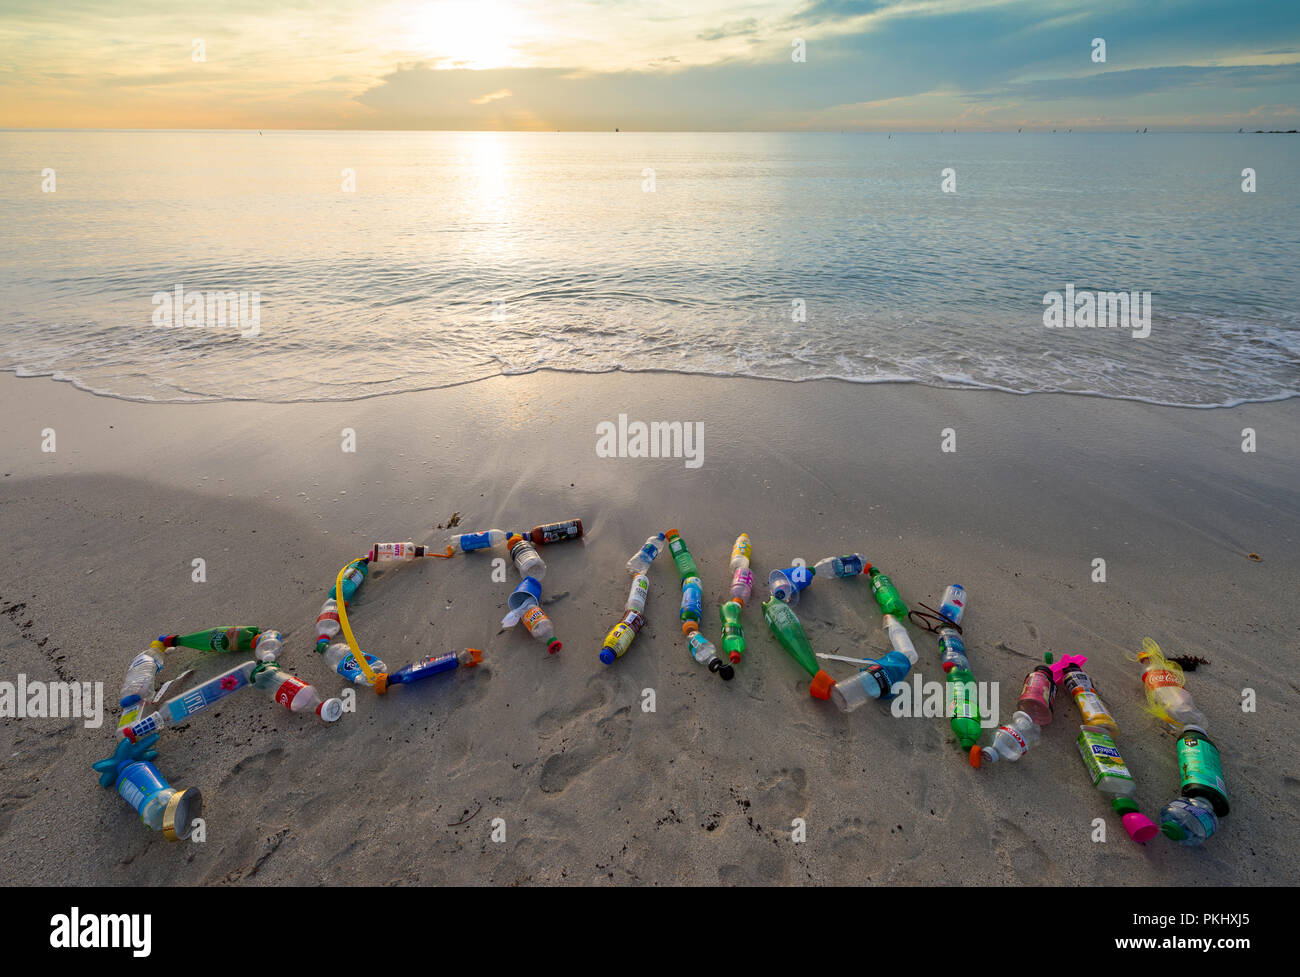 MIAMI - CIRCA JUNE, 2018: 'ACT NOW' spelled out in the sand using plastic trash collected on Miami beach, a reminder to reduce, reuse, recycle - Stock Image